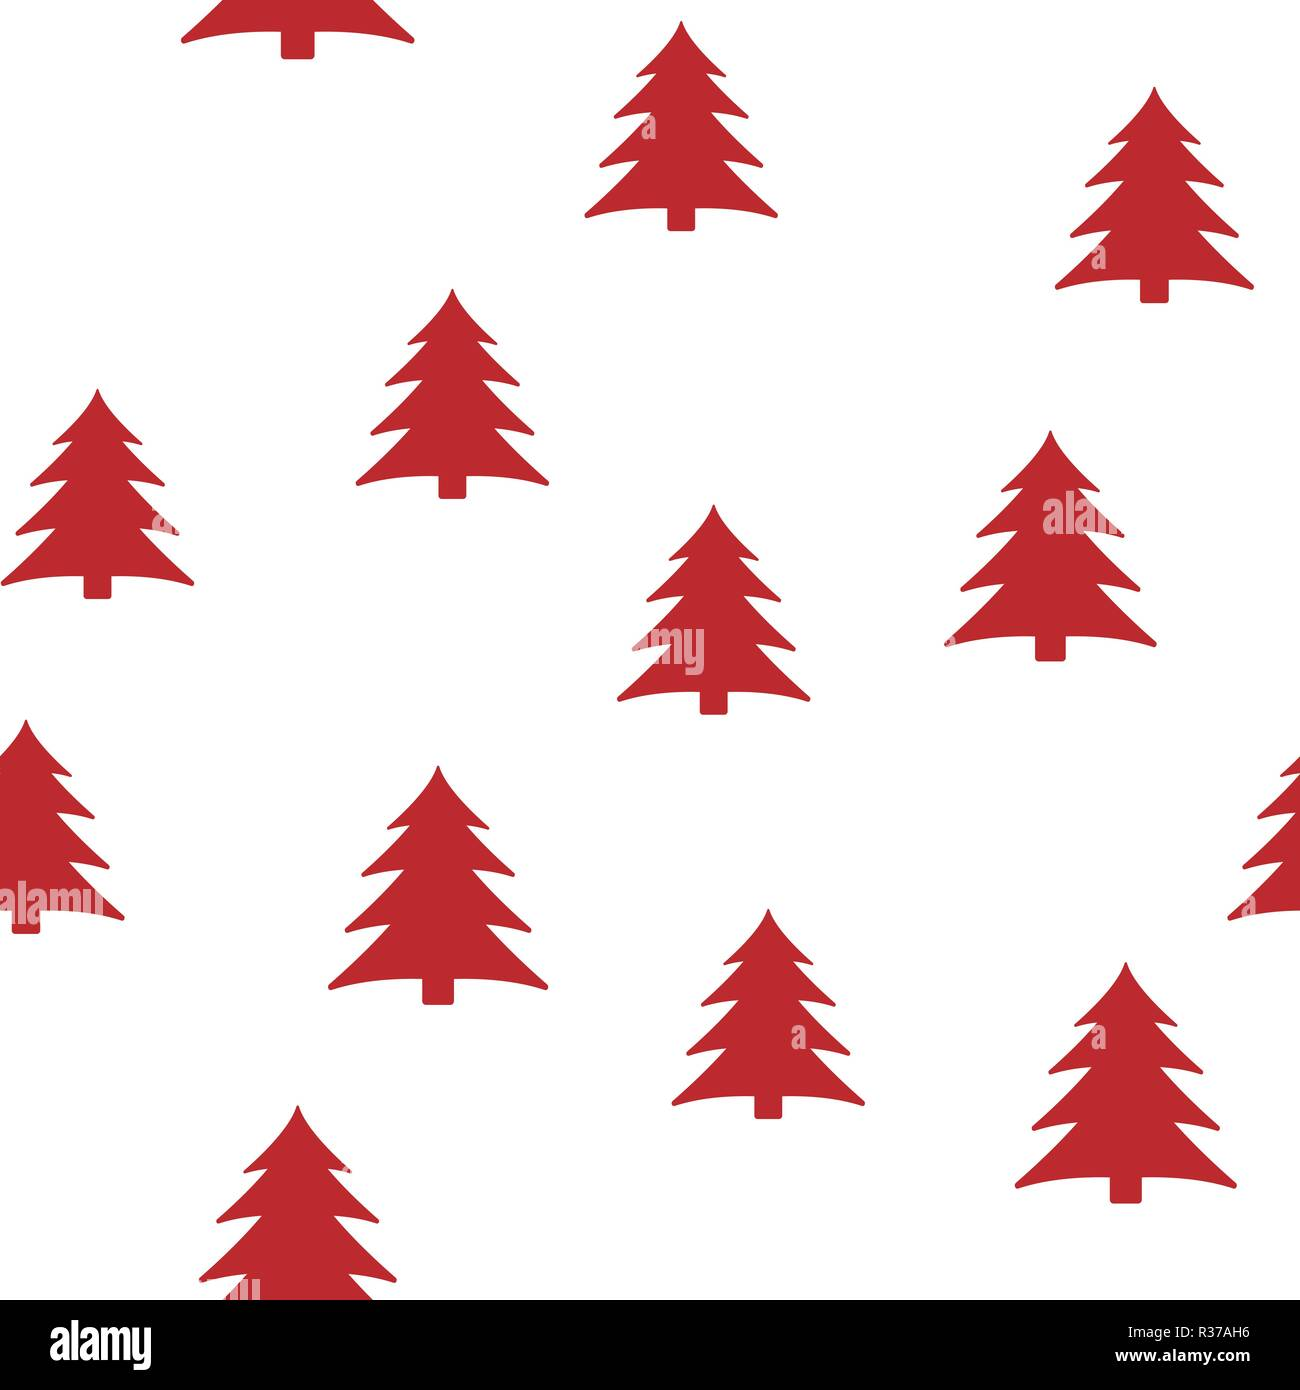 Vintage Trees Stock Photos & Vintage Trees Stock Images - Page 12 ...